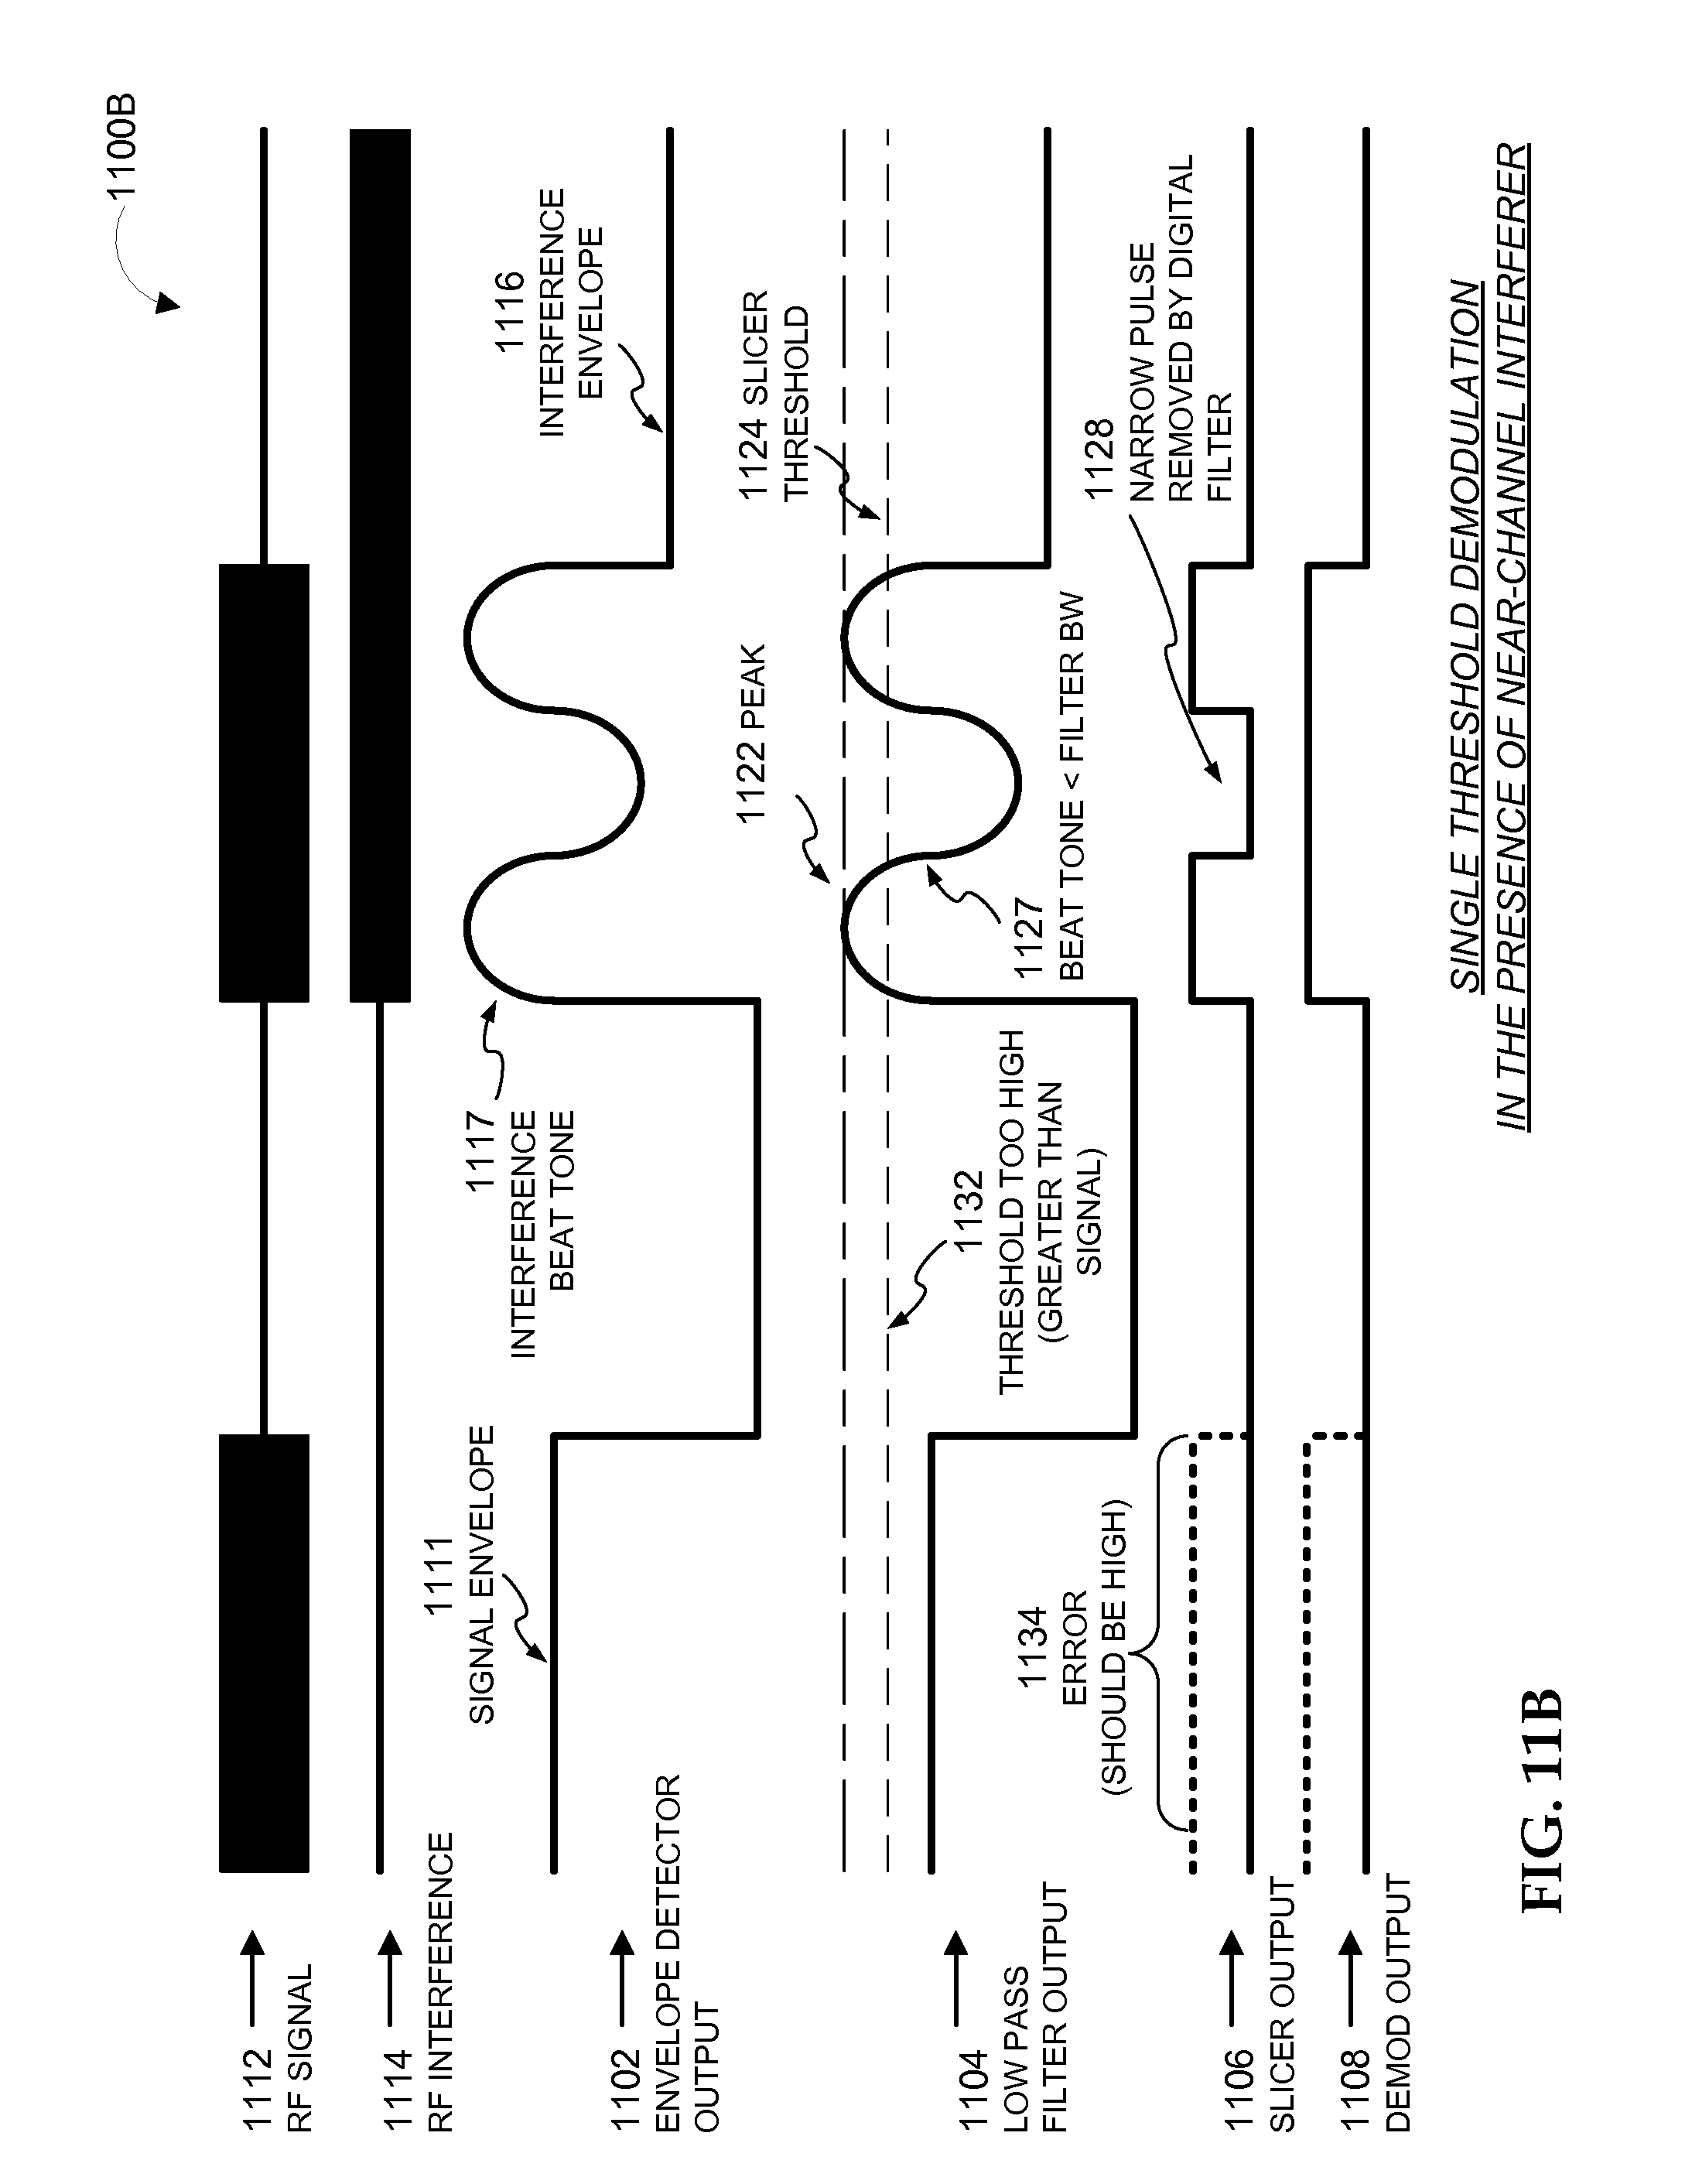 patente us7917088 - adaptable detection threshold for rfid tags and chips